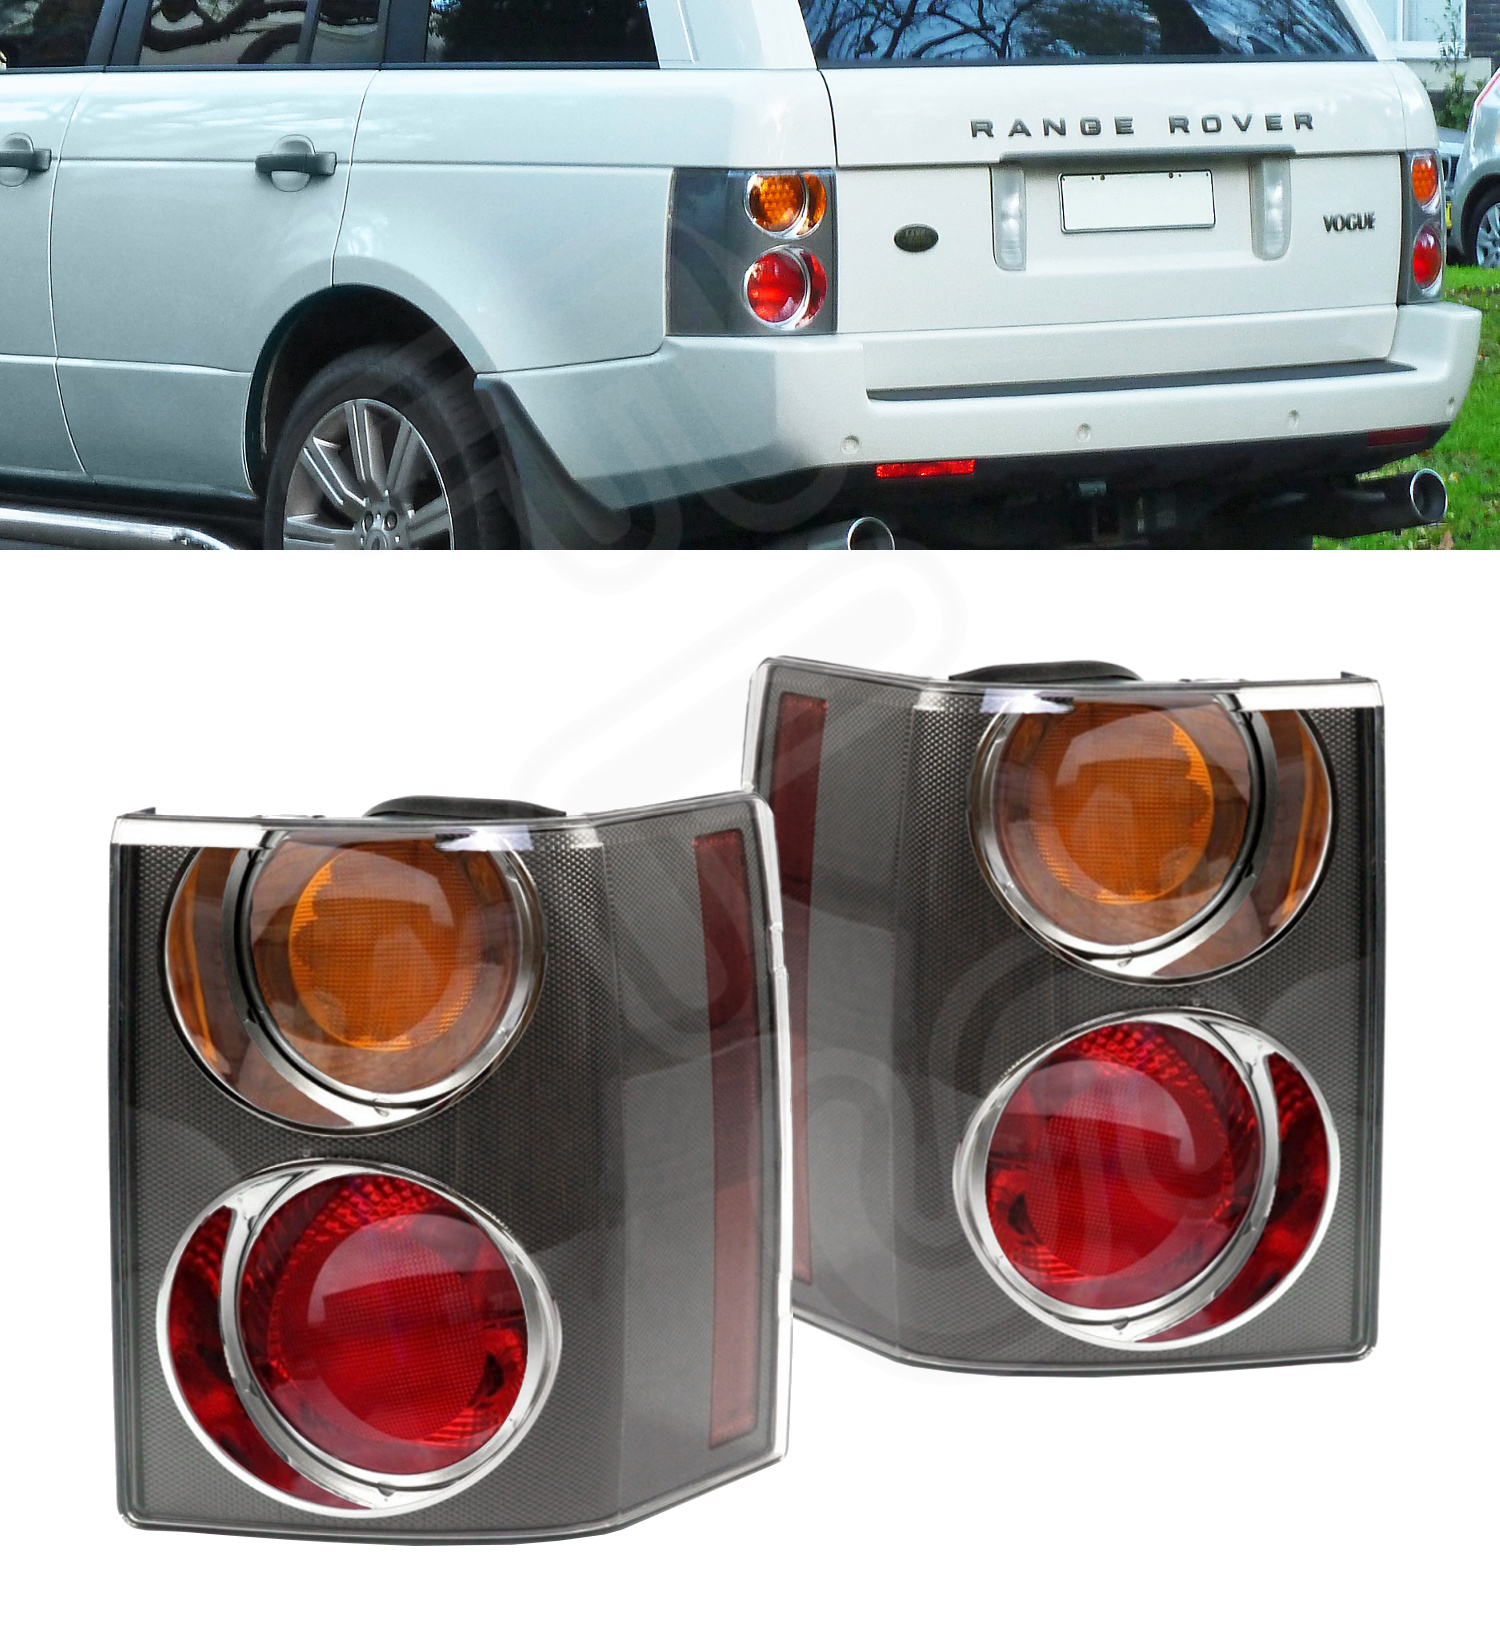 RANGE ROVER VOGUE L322 CRYSTAL CLEAR SIDE INDICATORS WING REPEATERS 09-12 PART